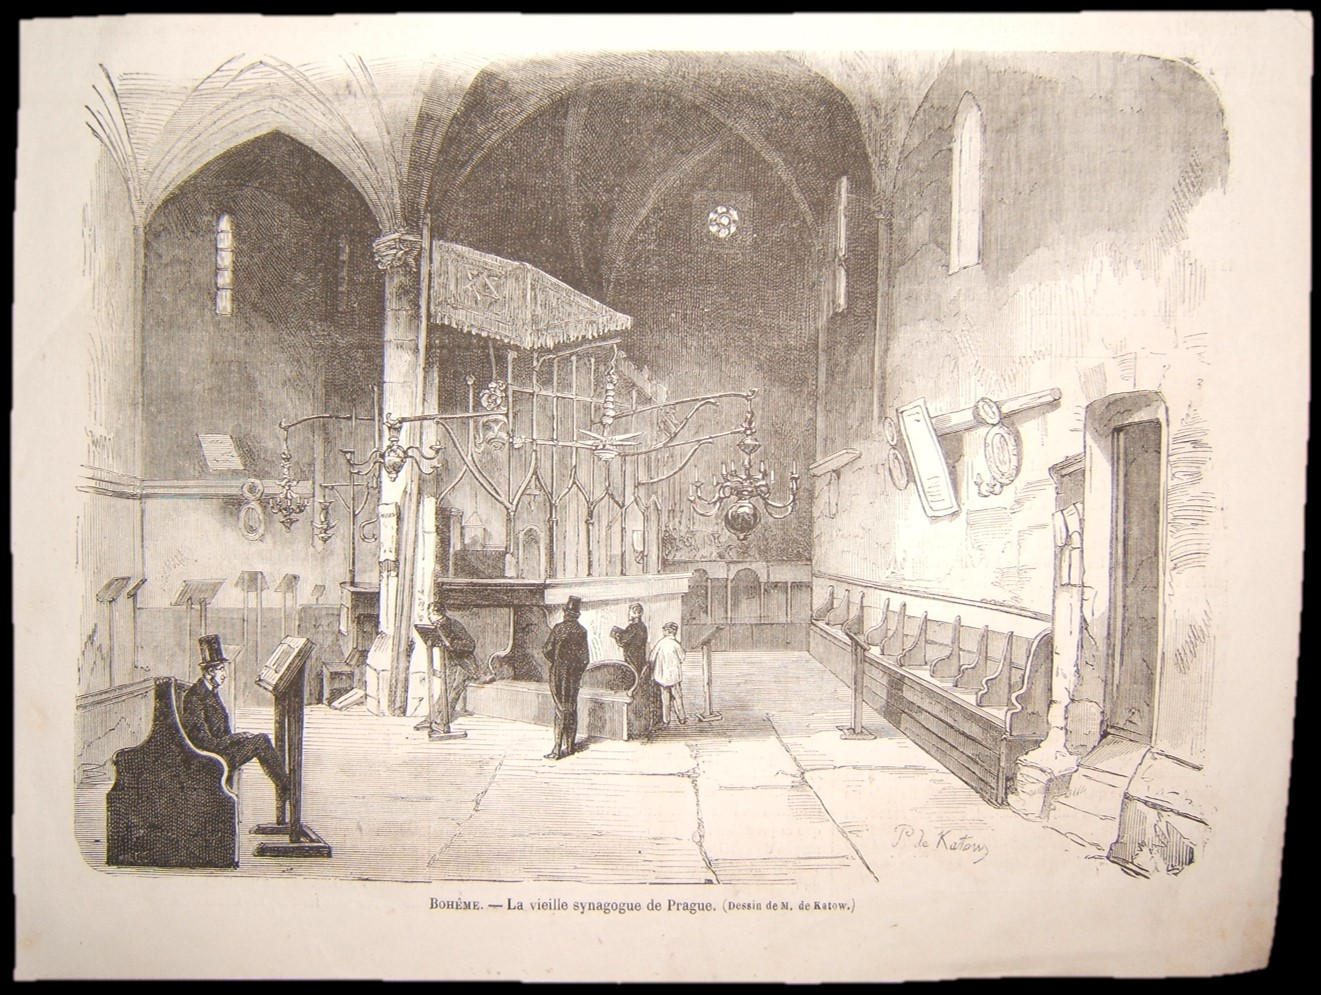 French Judaica print of Alt-Neu Shul Synagogue, Prague/Bohemia, by Paul de Katow